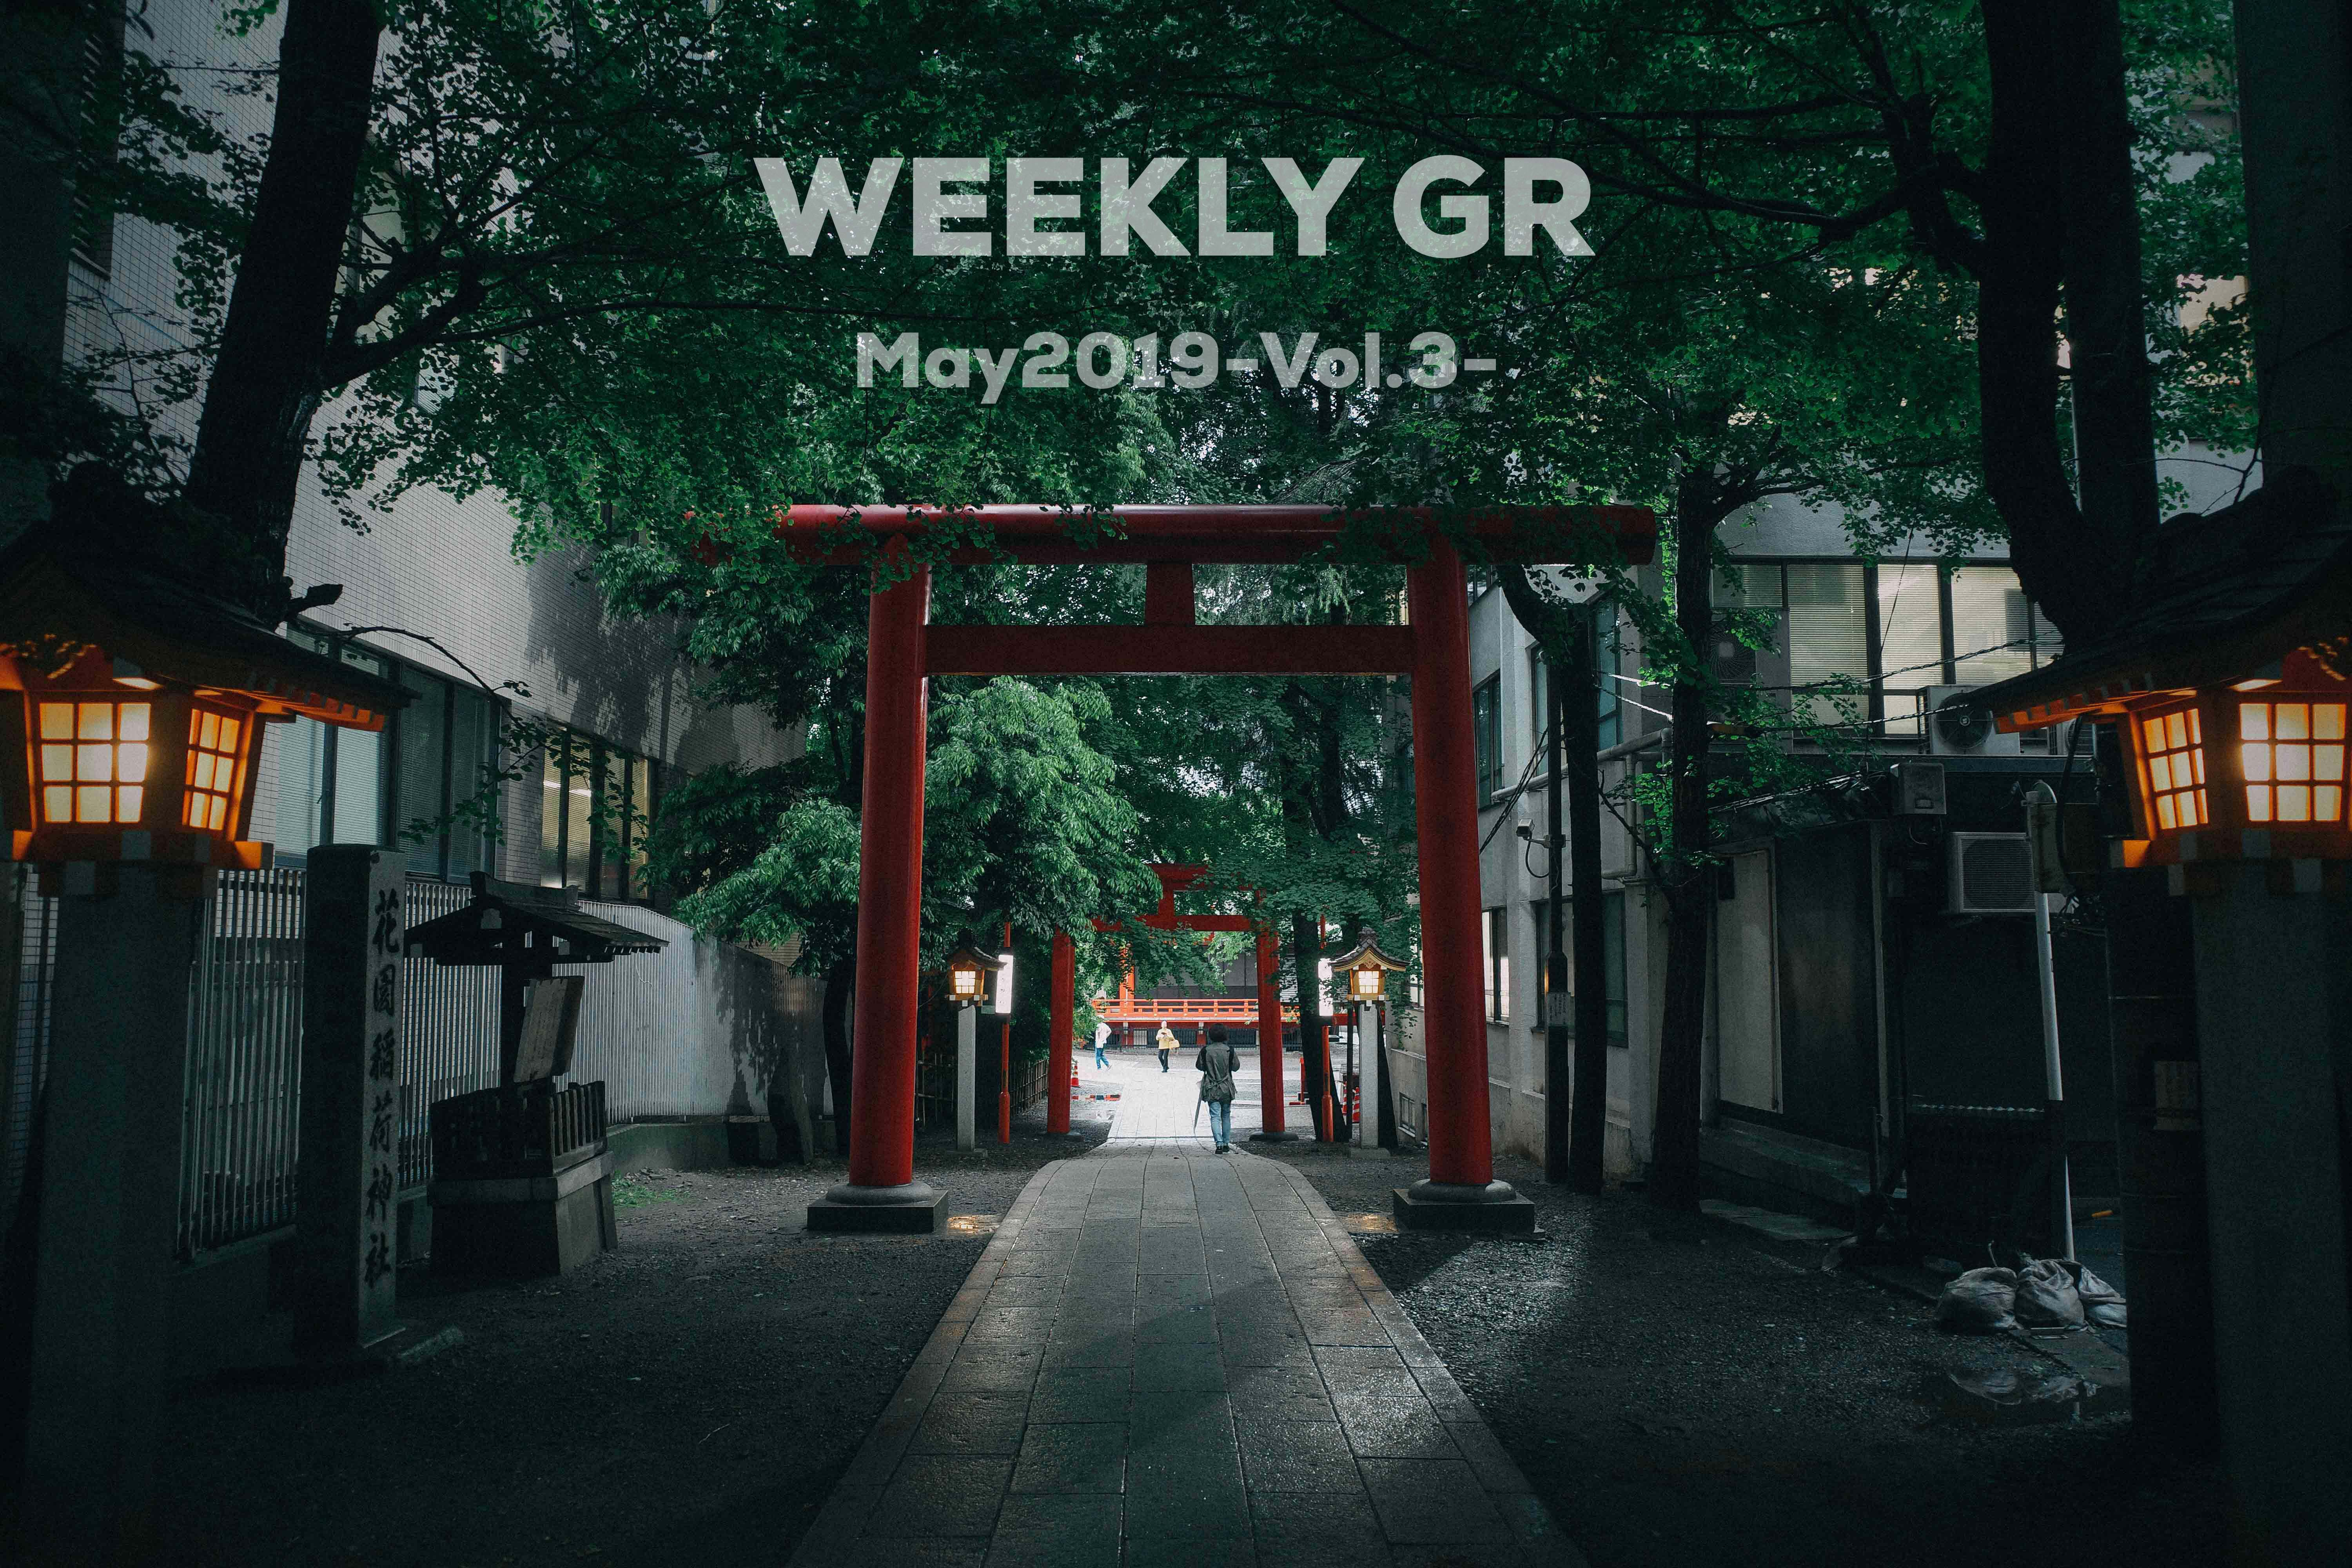 WEELKY GR|May 2019-Vol.3-